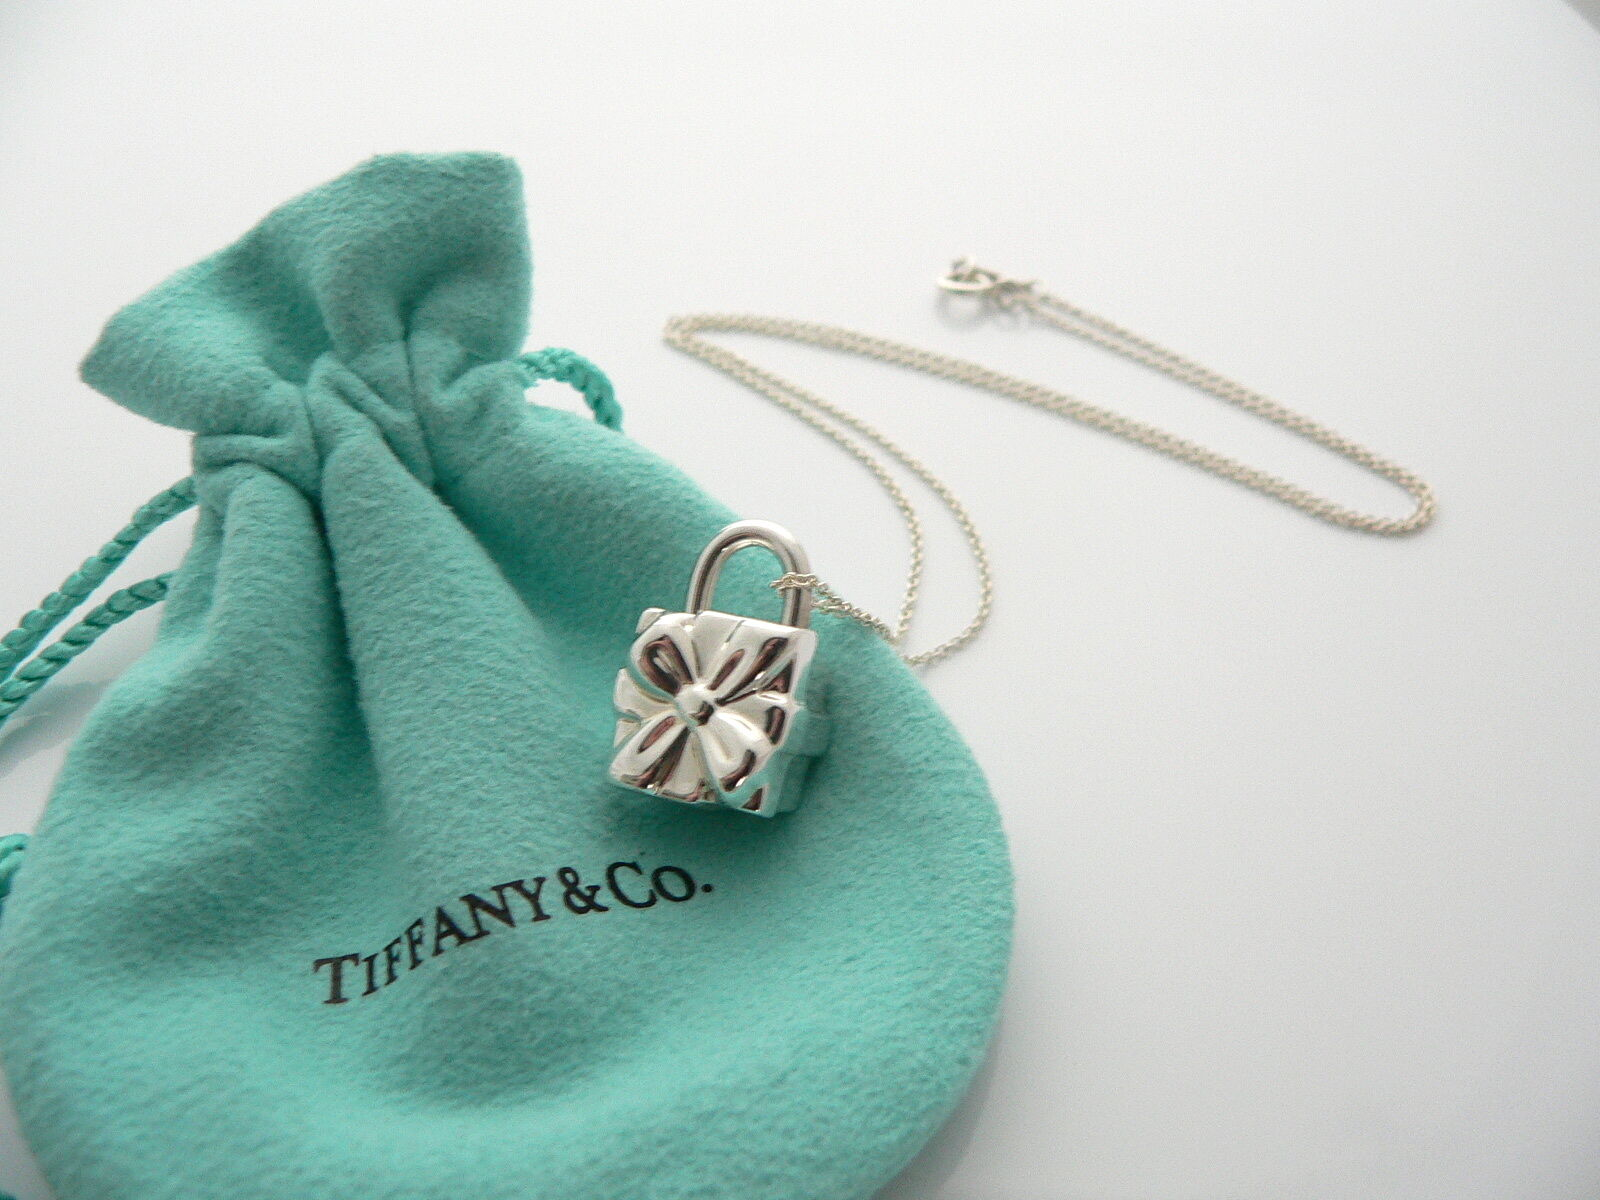 Tiffany & Co Silver Signature Gift Box Charm Necklace Pendant Charm Gift Pouch